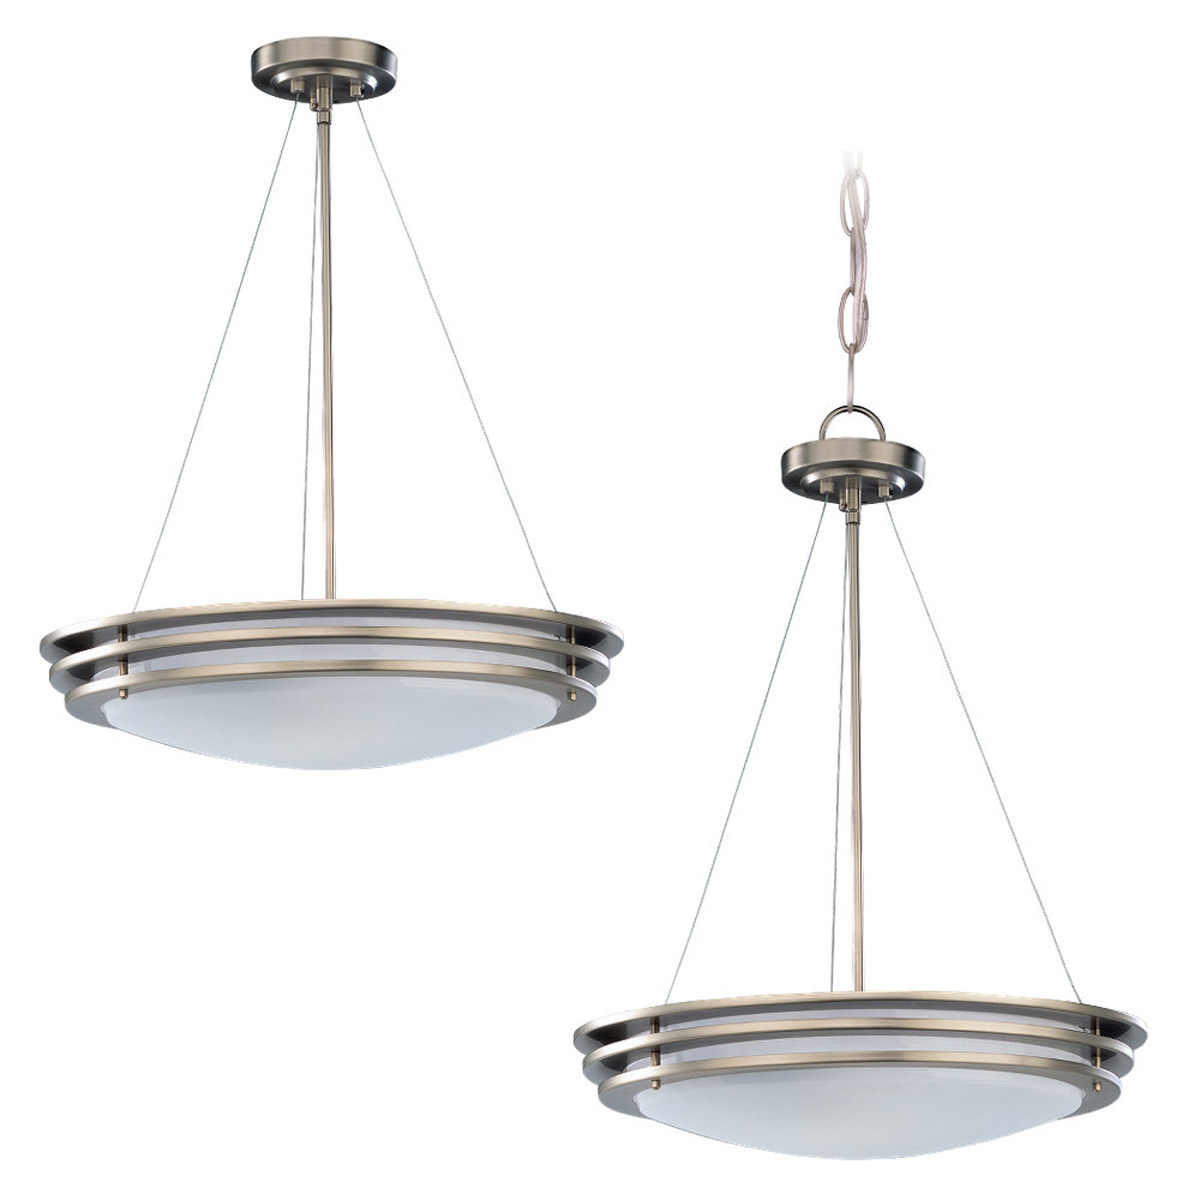 Sea Gull Lighting Nexus 2 Light Pendant in Brushed Nickel 69152BLE-962 photo